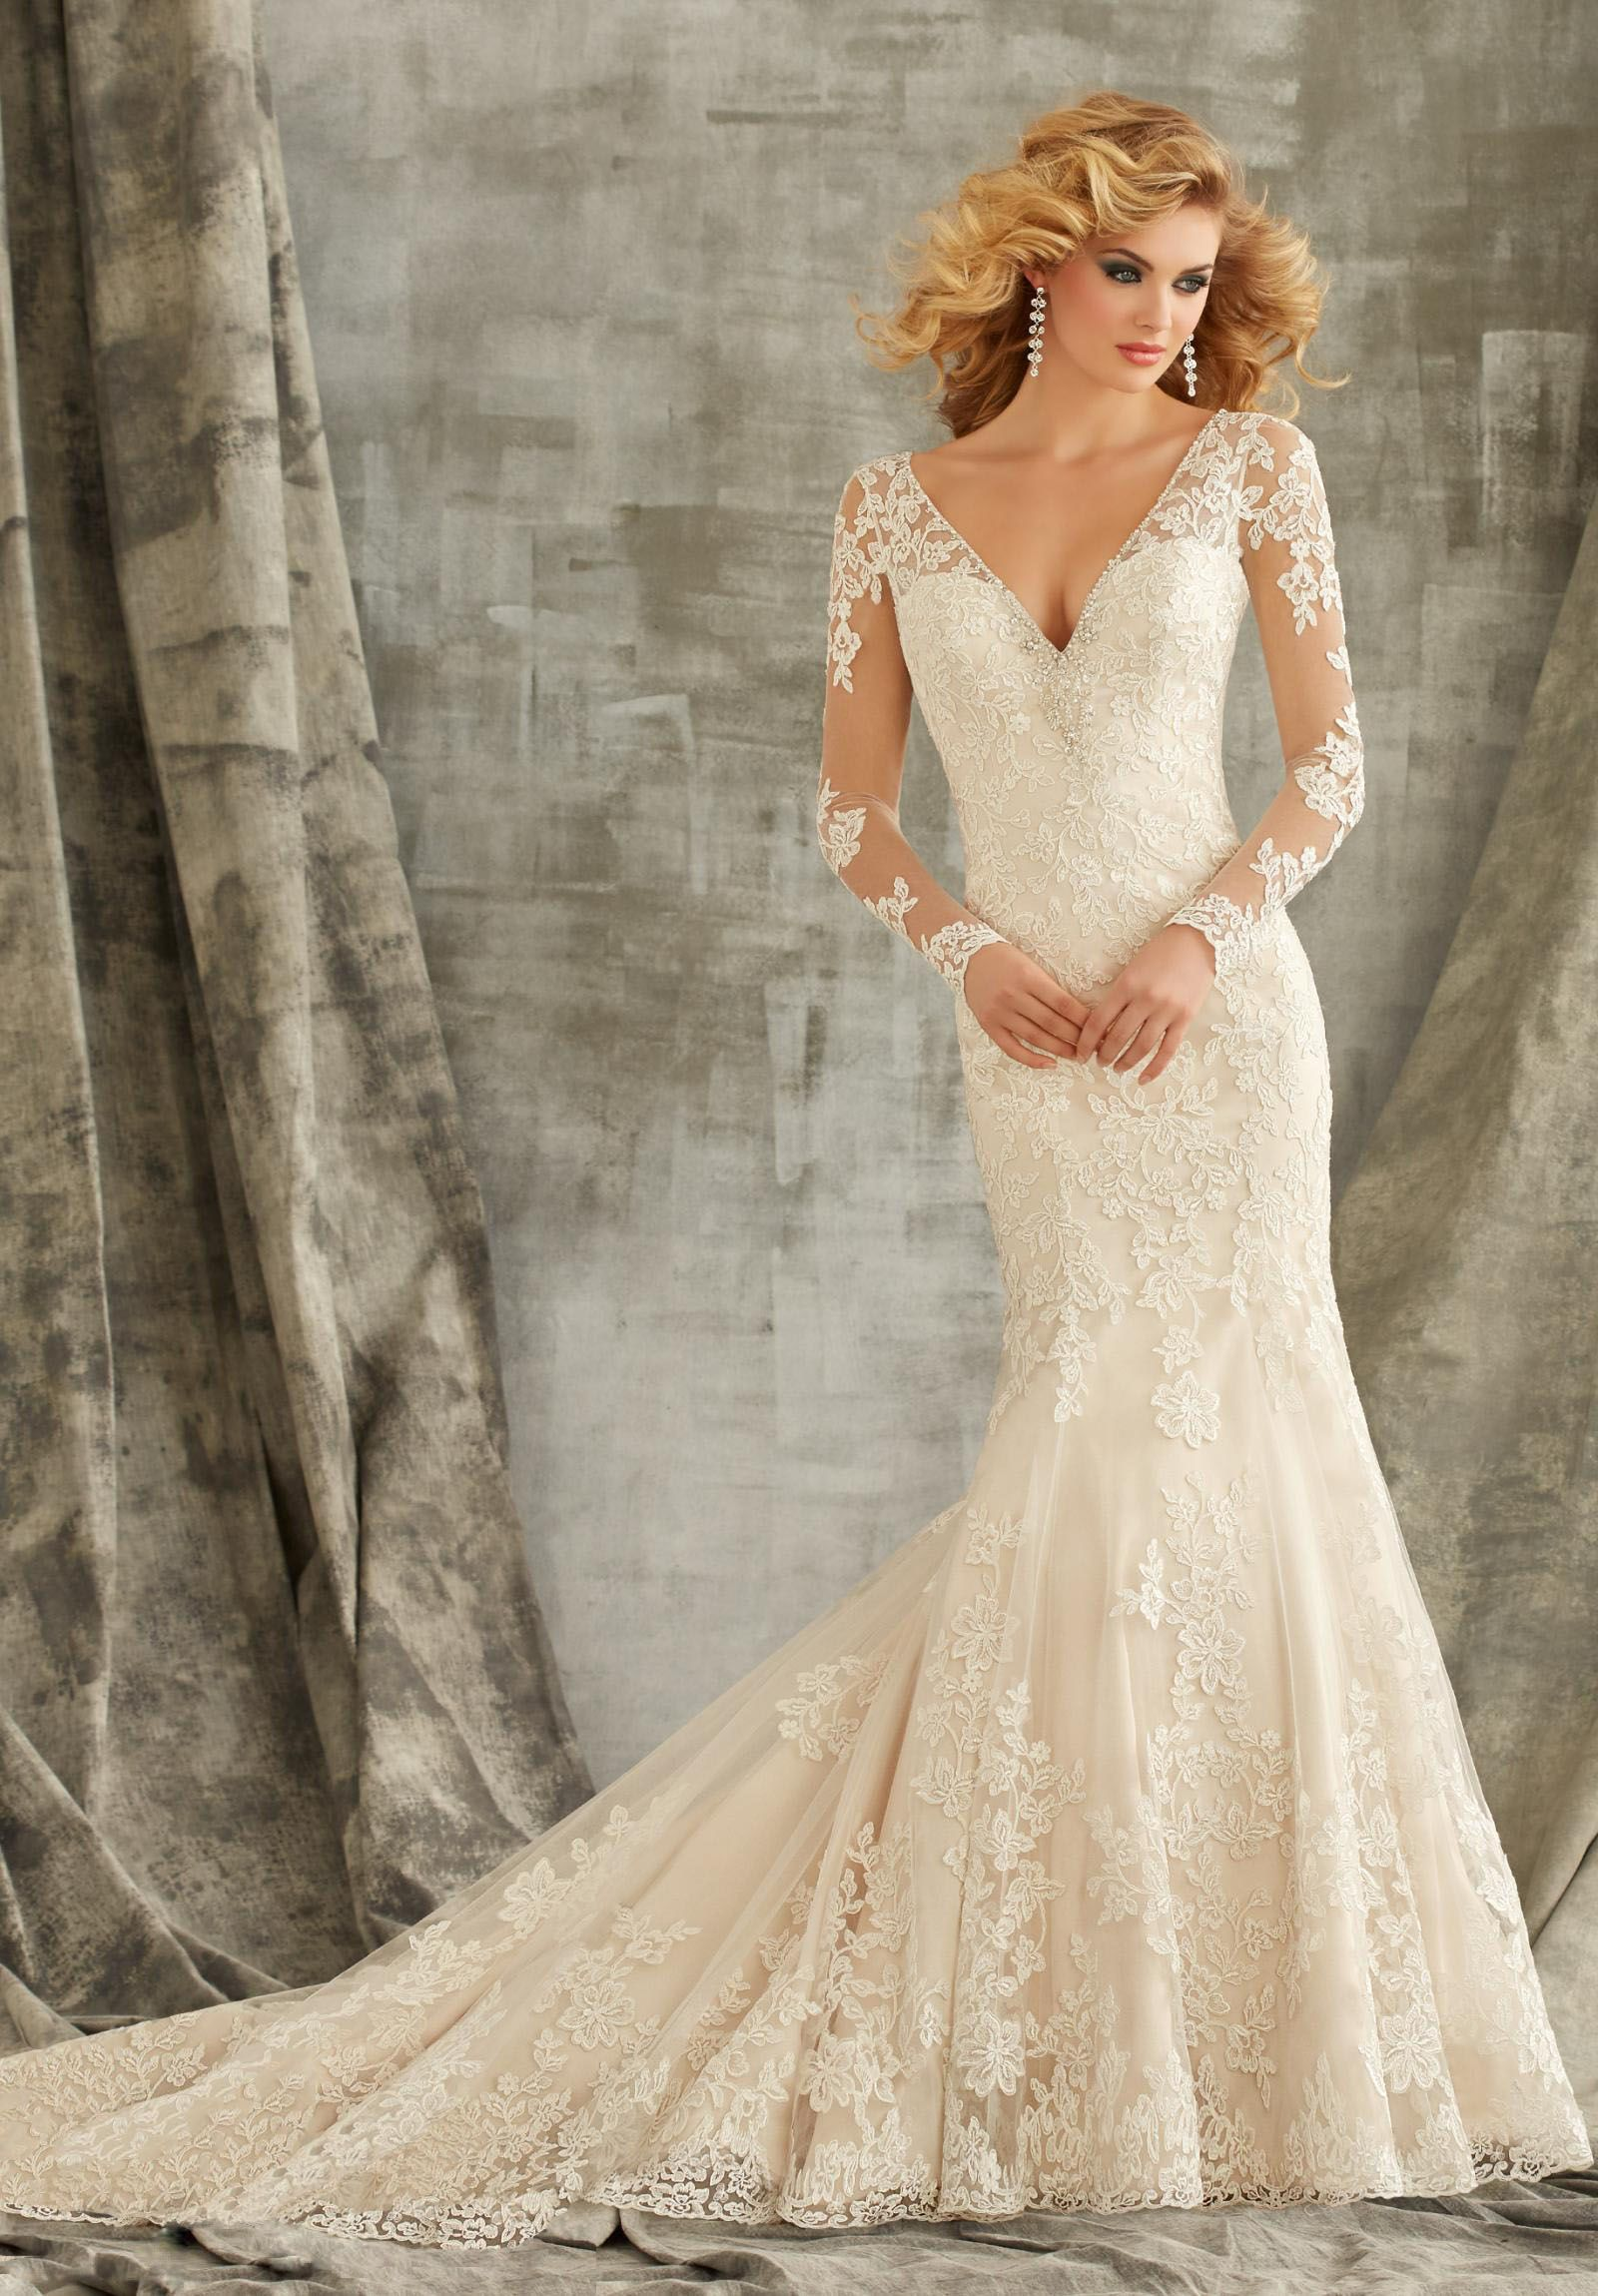 sleeve wedding gowns mermaid wedding dresses bridal gowns wedding